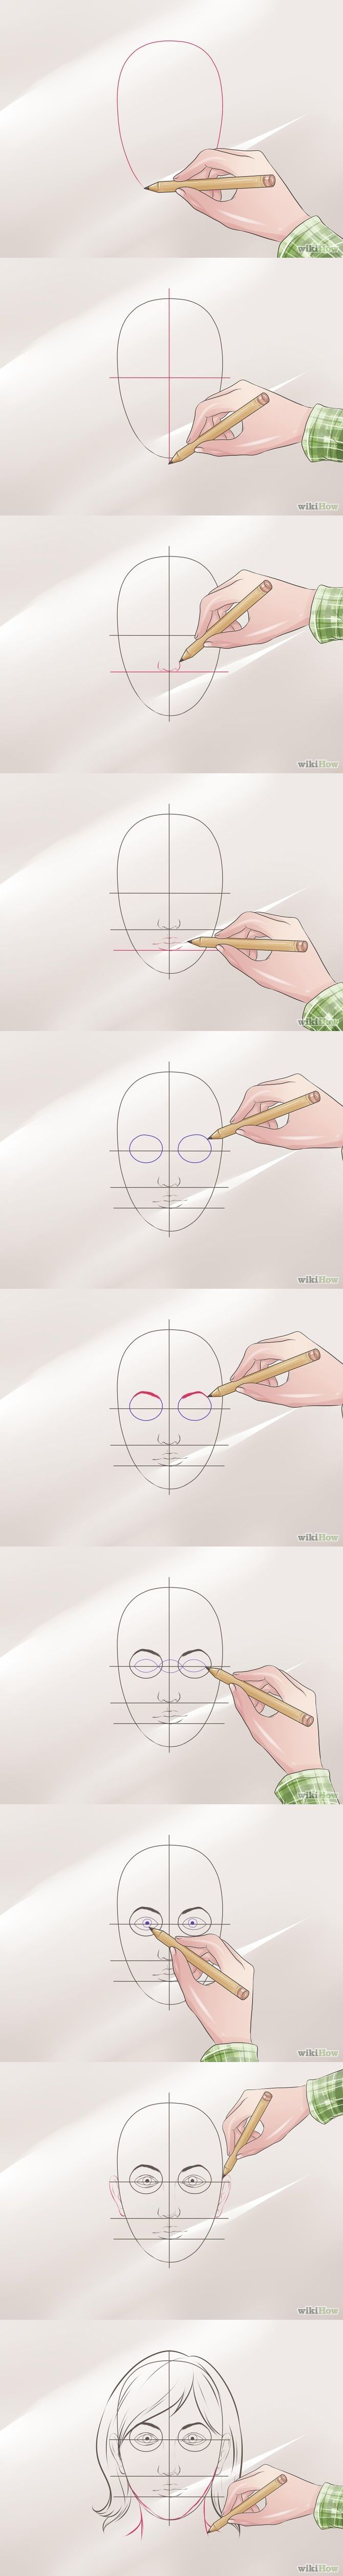 How to draw a face Step by step tutorial Wikihow #draw #face #drawing #how to